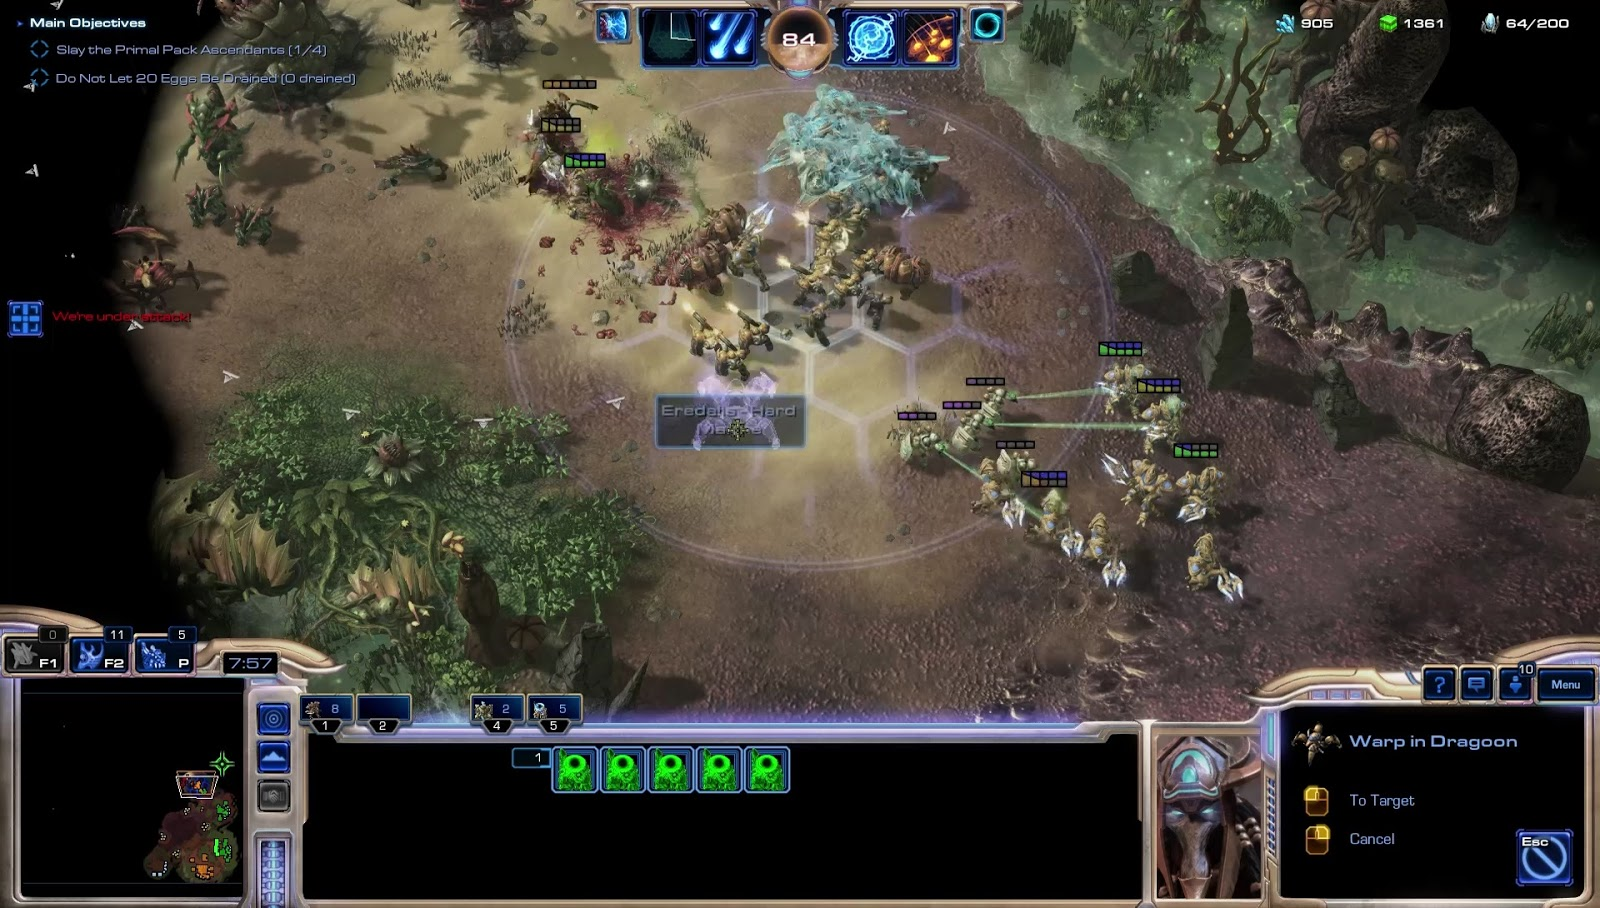 Announcing Starcraft 2: Primal Ascension - Outsider Xandros